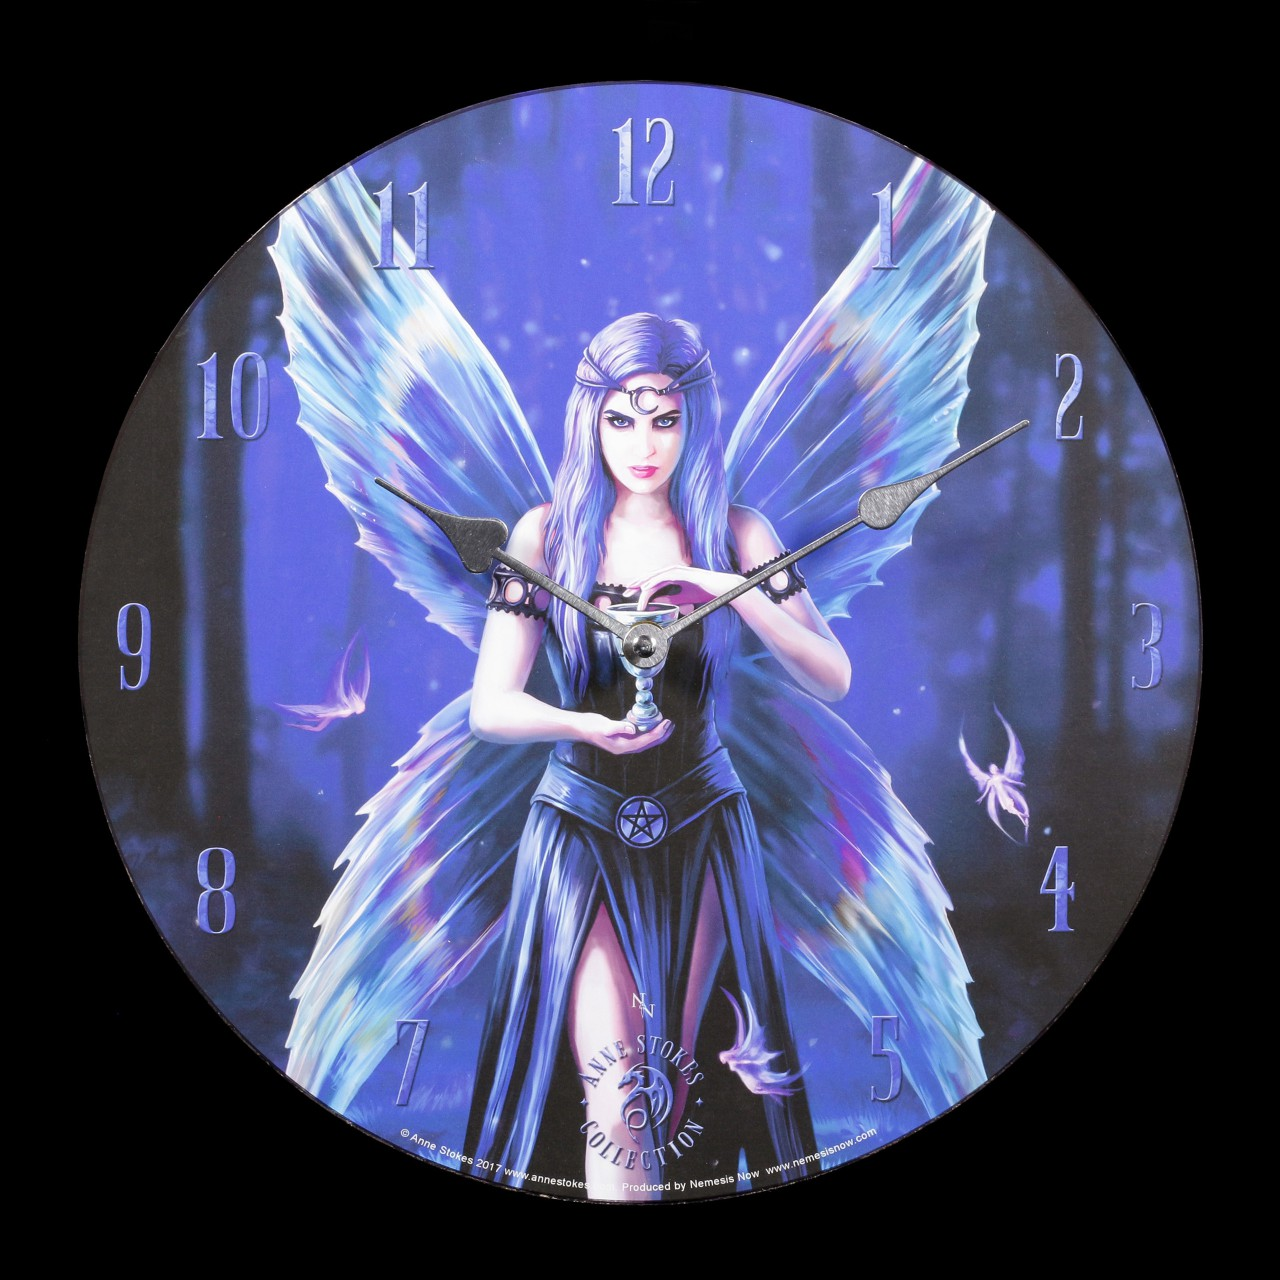 Wall Clock with Fairy - Enchantment